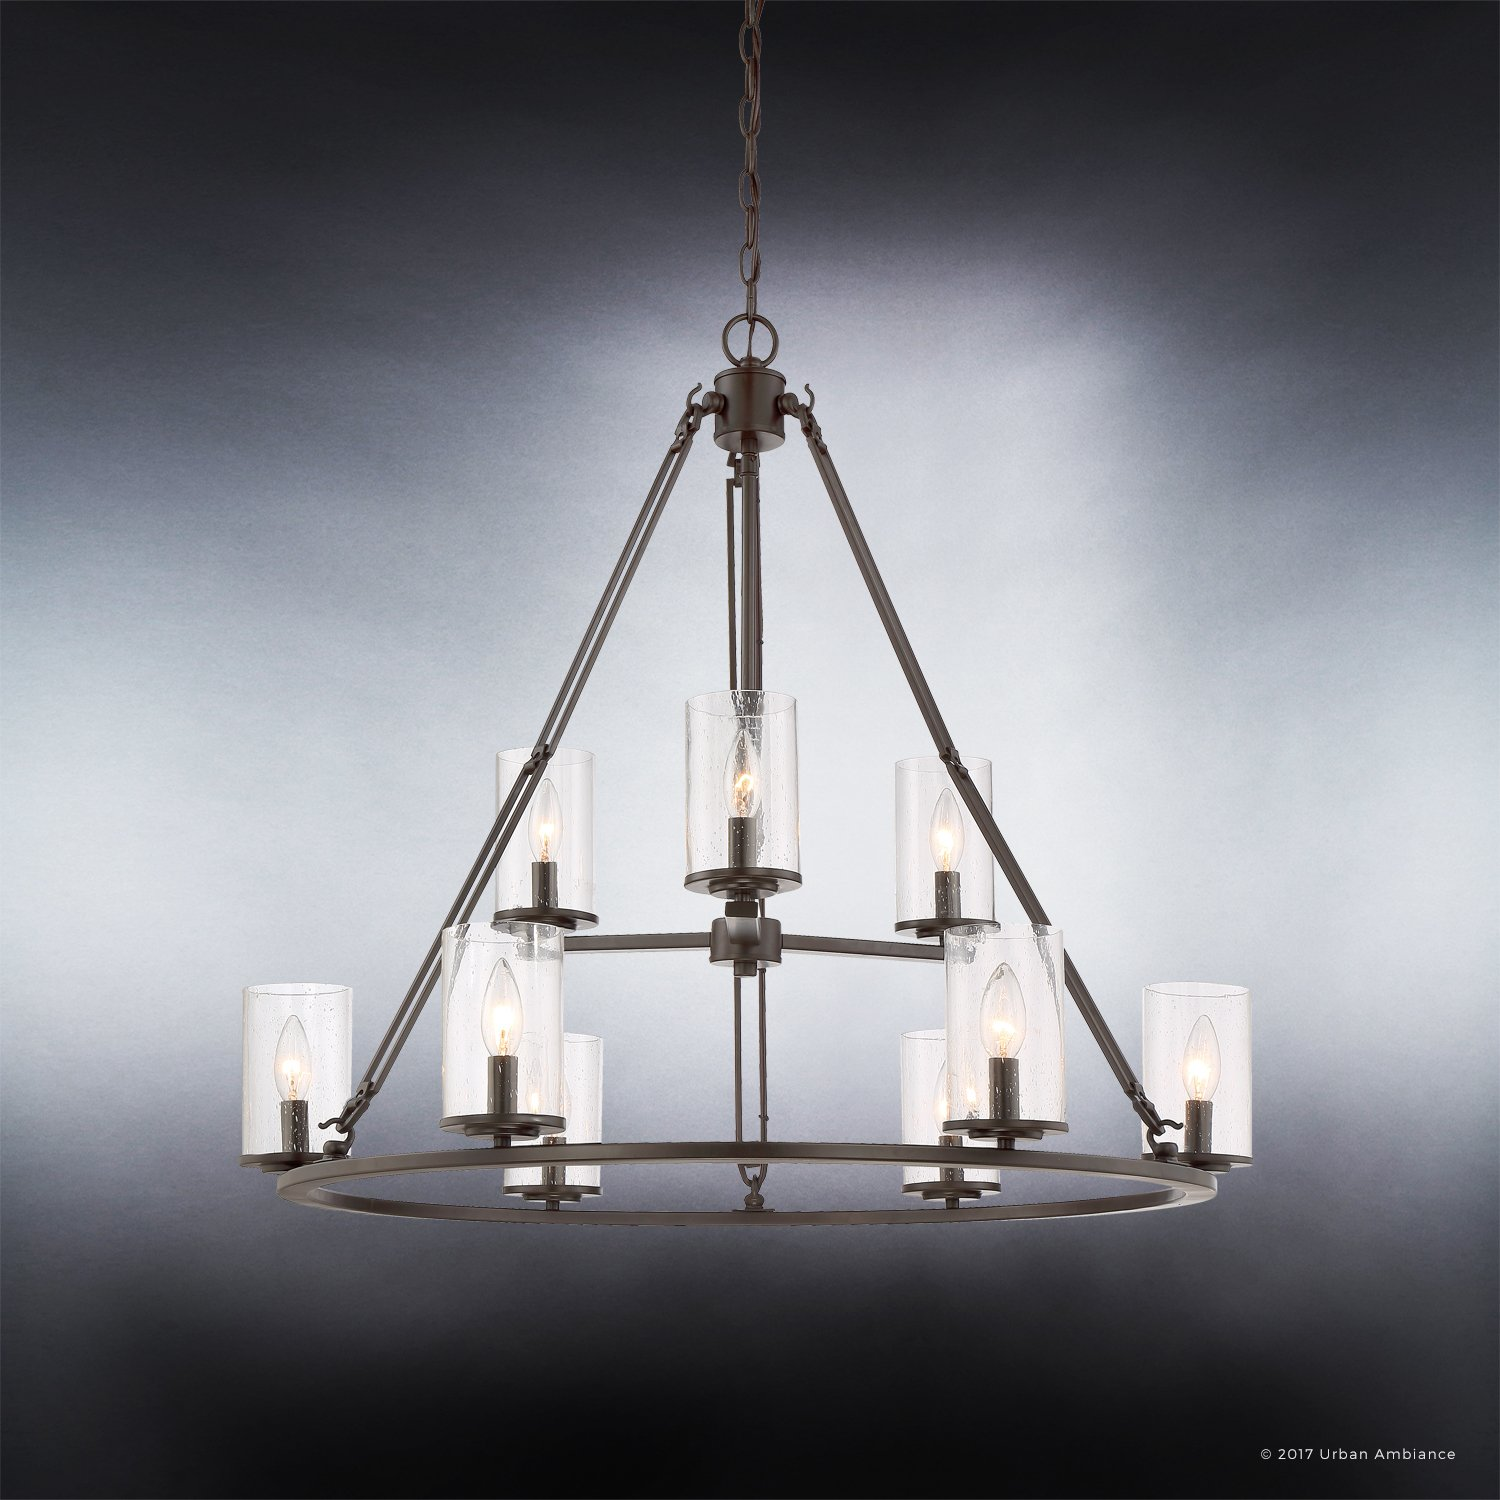 Luxury Industrial Chandelier, Large Size: 30''H x 33''W, with Western Style Elements, Rectangular Link Design, Elegant Estate Bronze Finish and Seeded Glass, UQL2131 by Urban Ambiance by Urban Ambiance (Image #5)